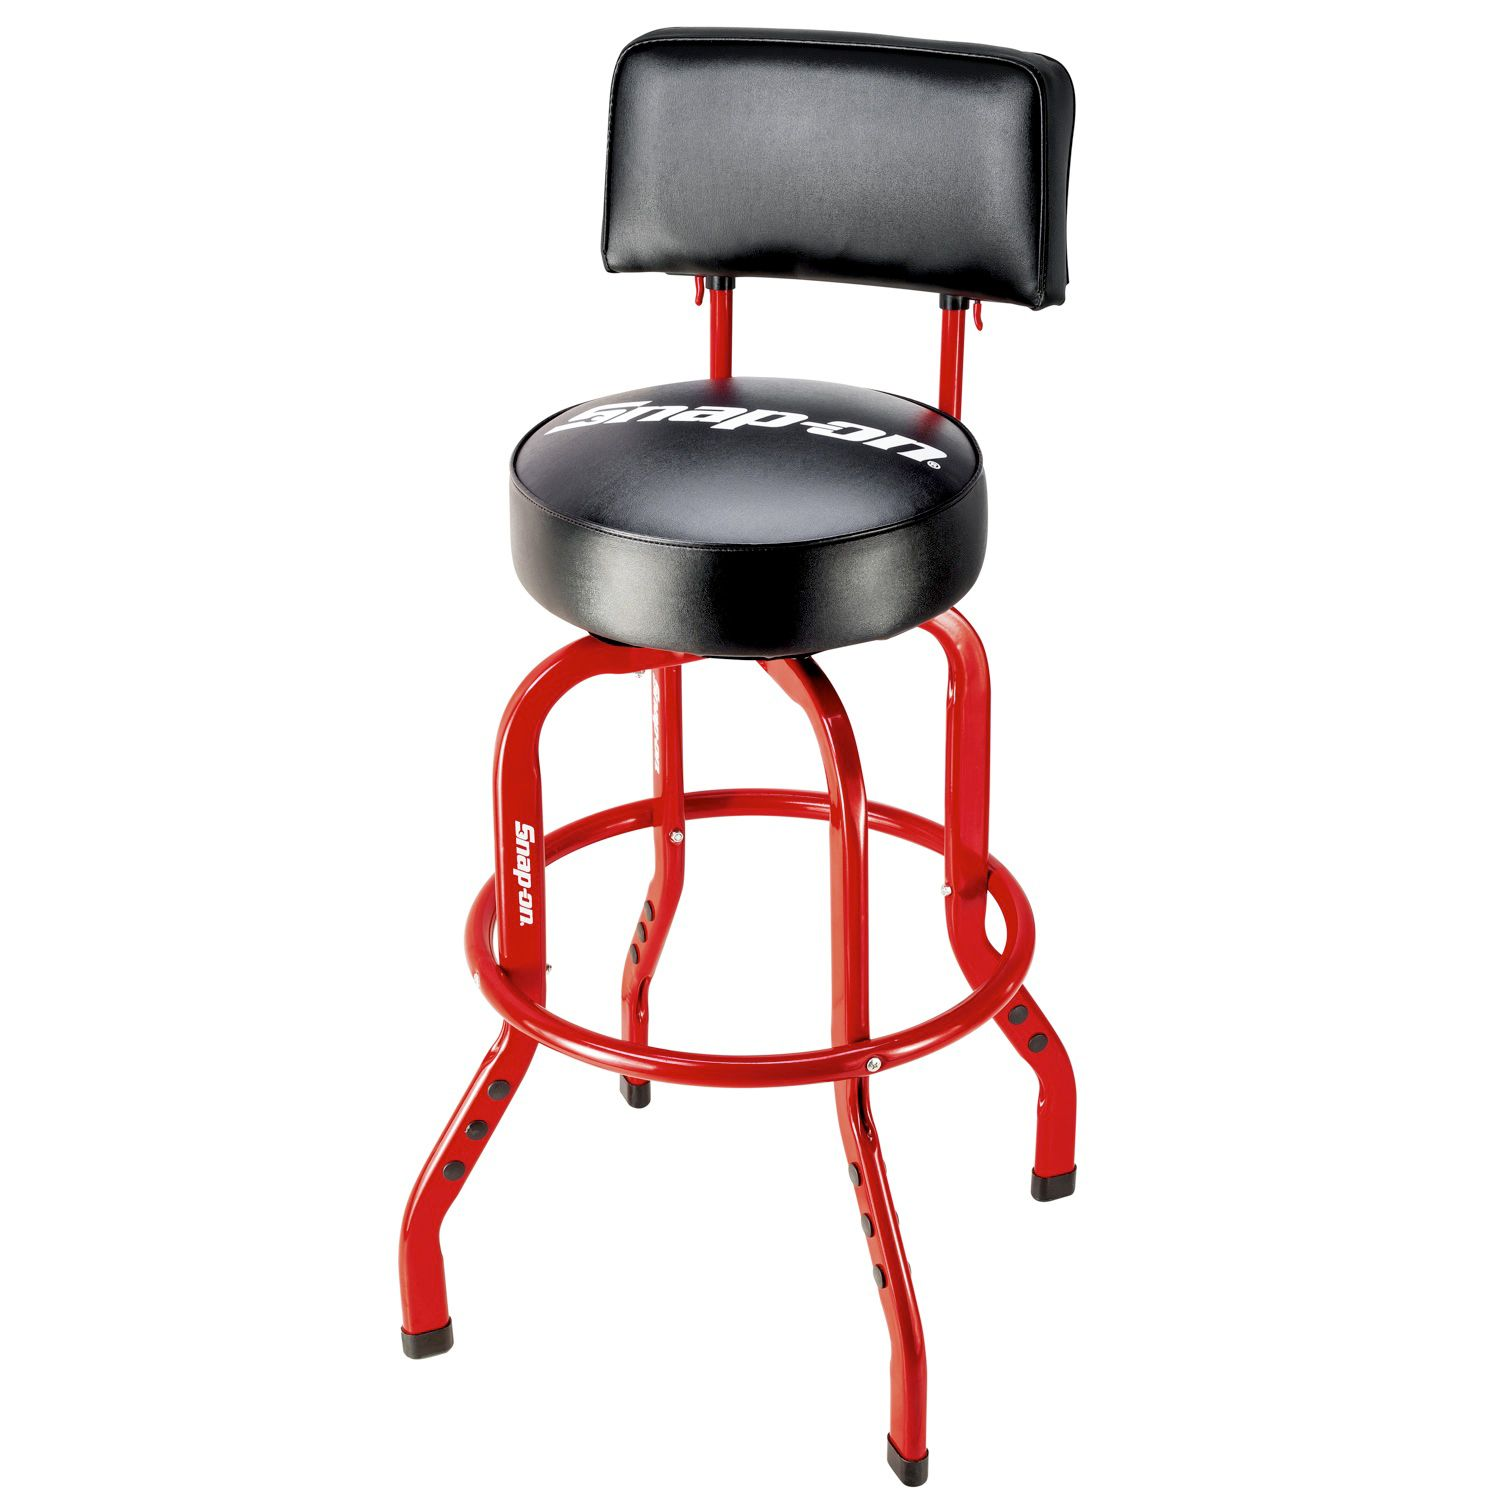 New Snap On Tools Deluxe Swivel Official Licensed Shop Bar Stool Free Shipping